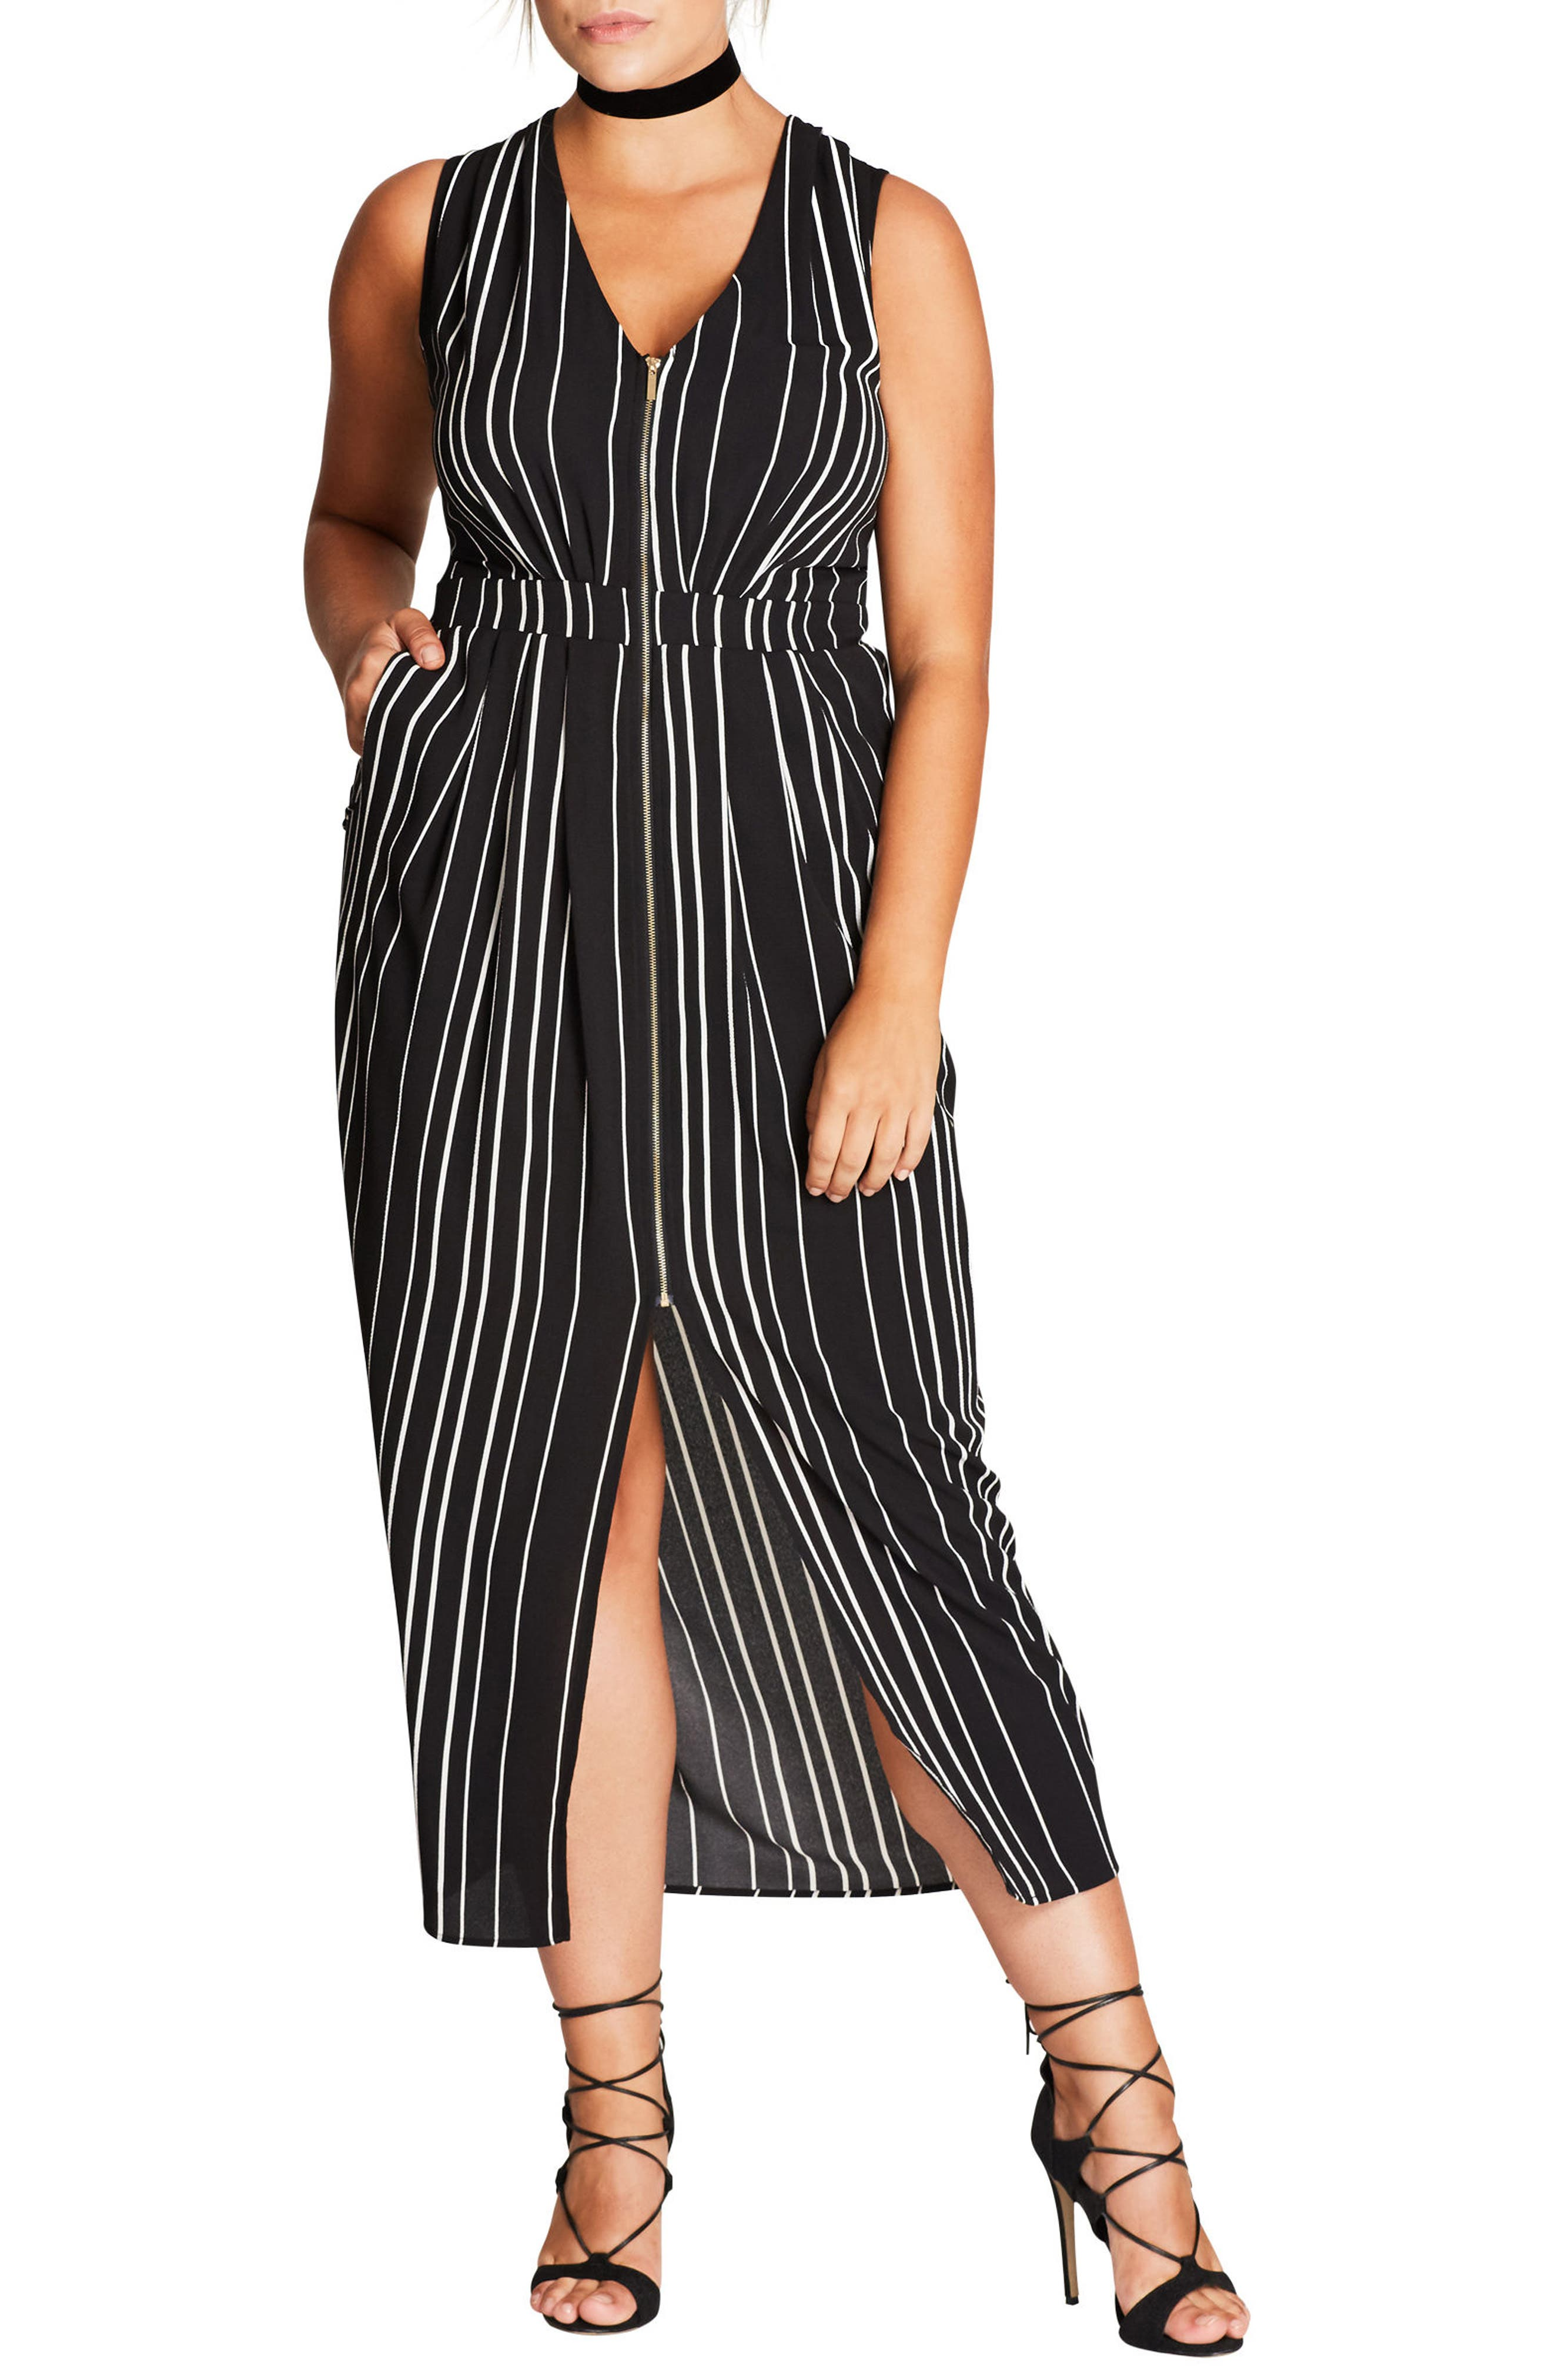 Pleat Zip Front Dress,                             Main thumbnail 1, color,                             001